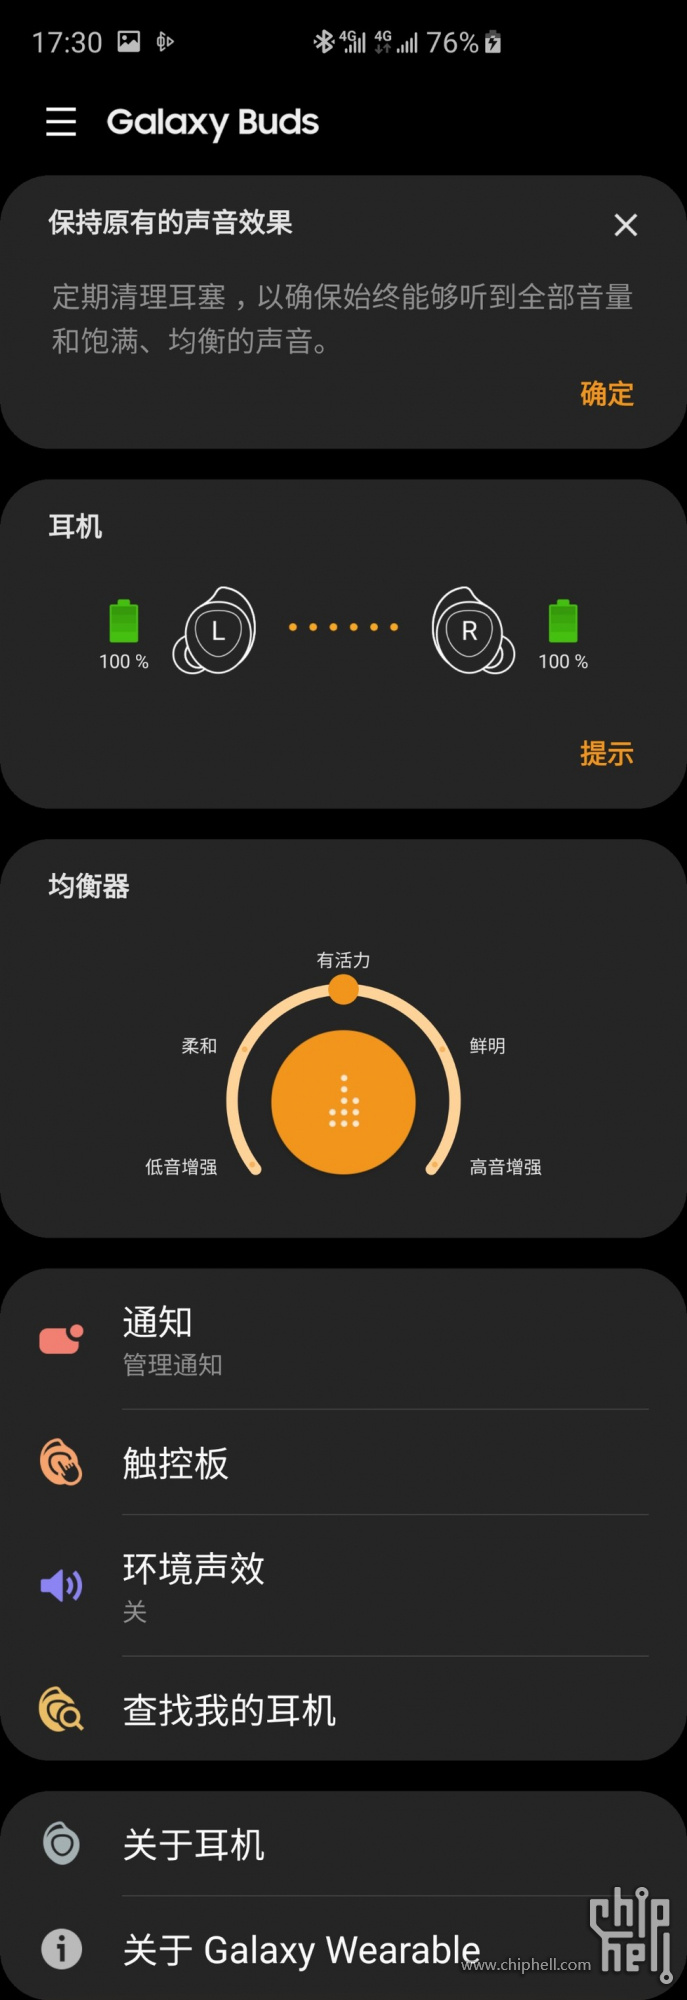 Screenshot_20190411-173028_Galaxy Buds_结果.jpg